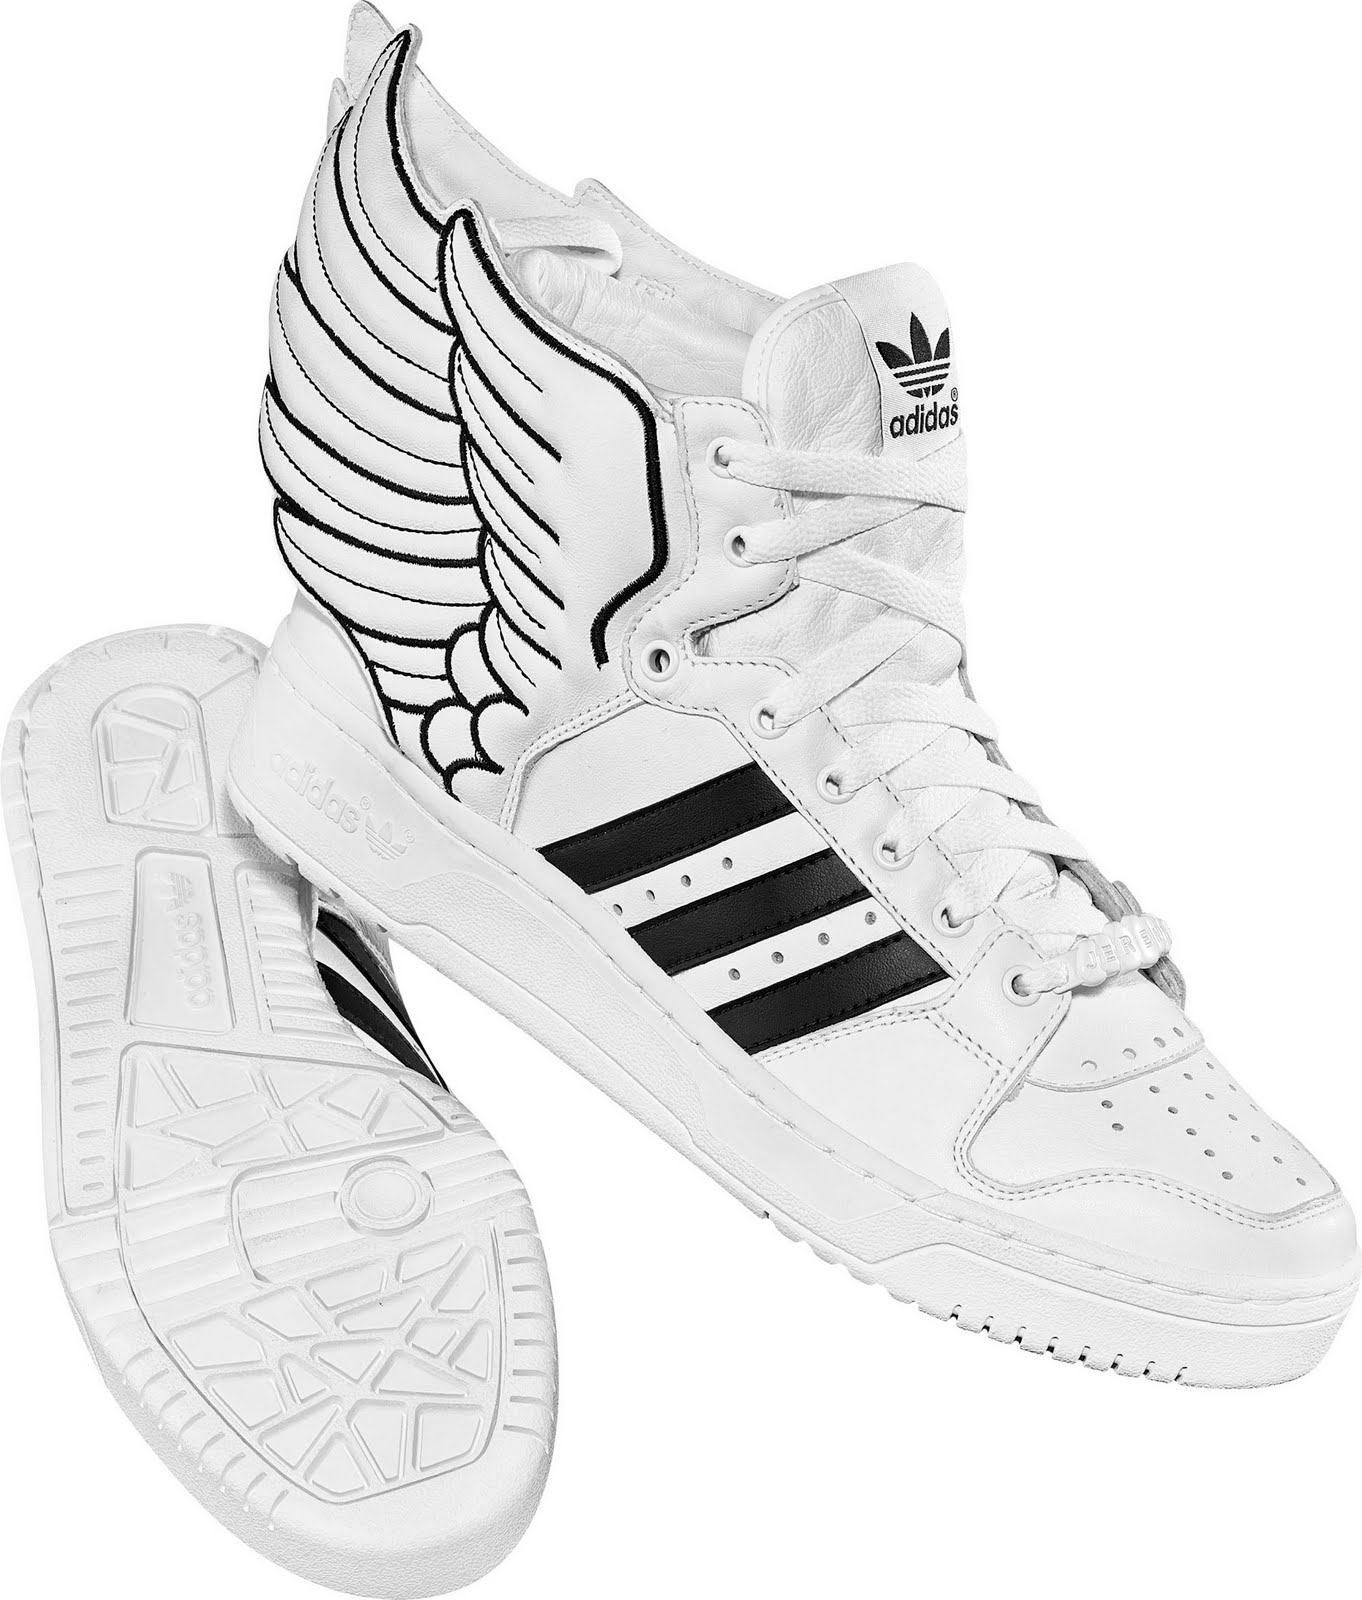 e10d69d80cc Winged sneakers by Jeremy Scott. (Image courtesy of Adidas Philippines)